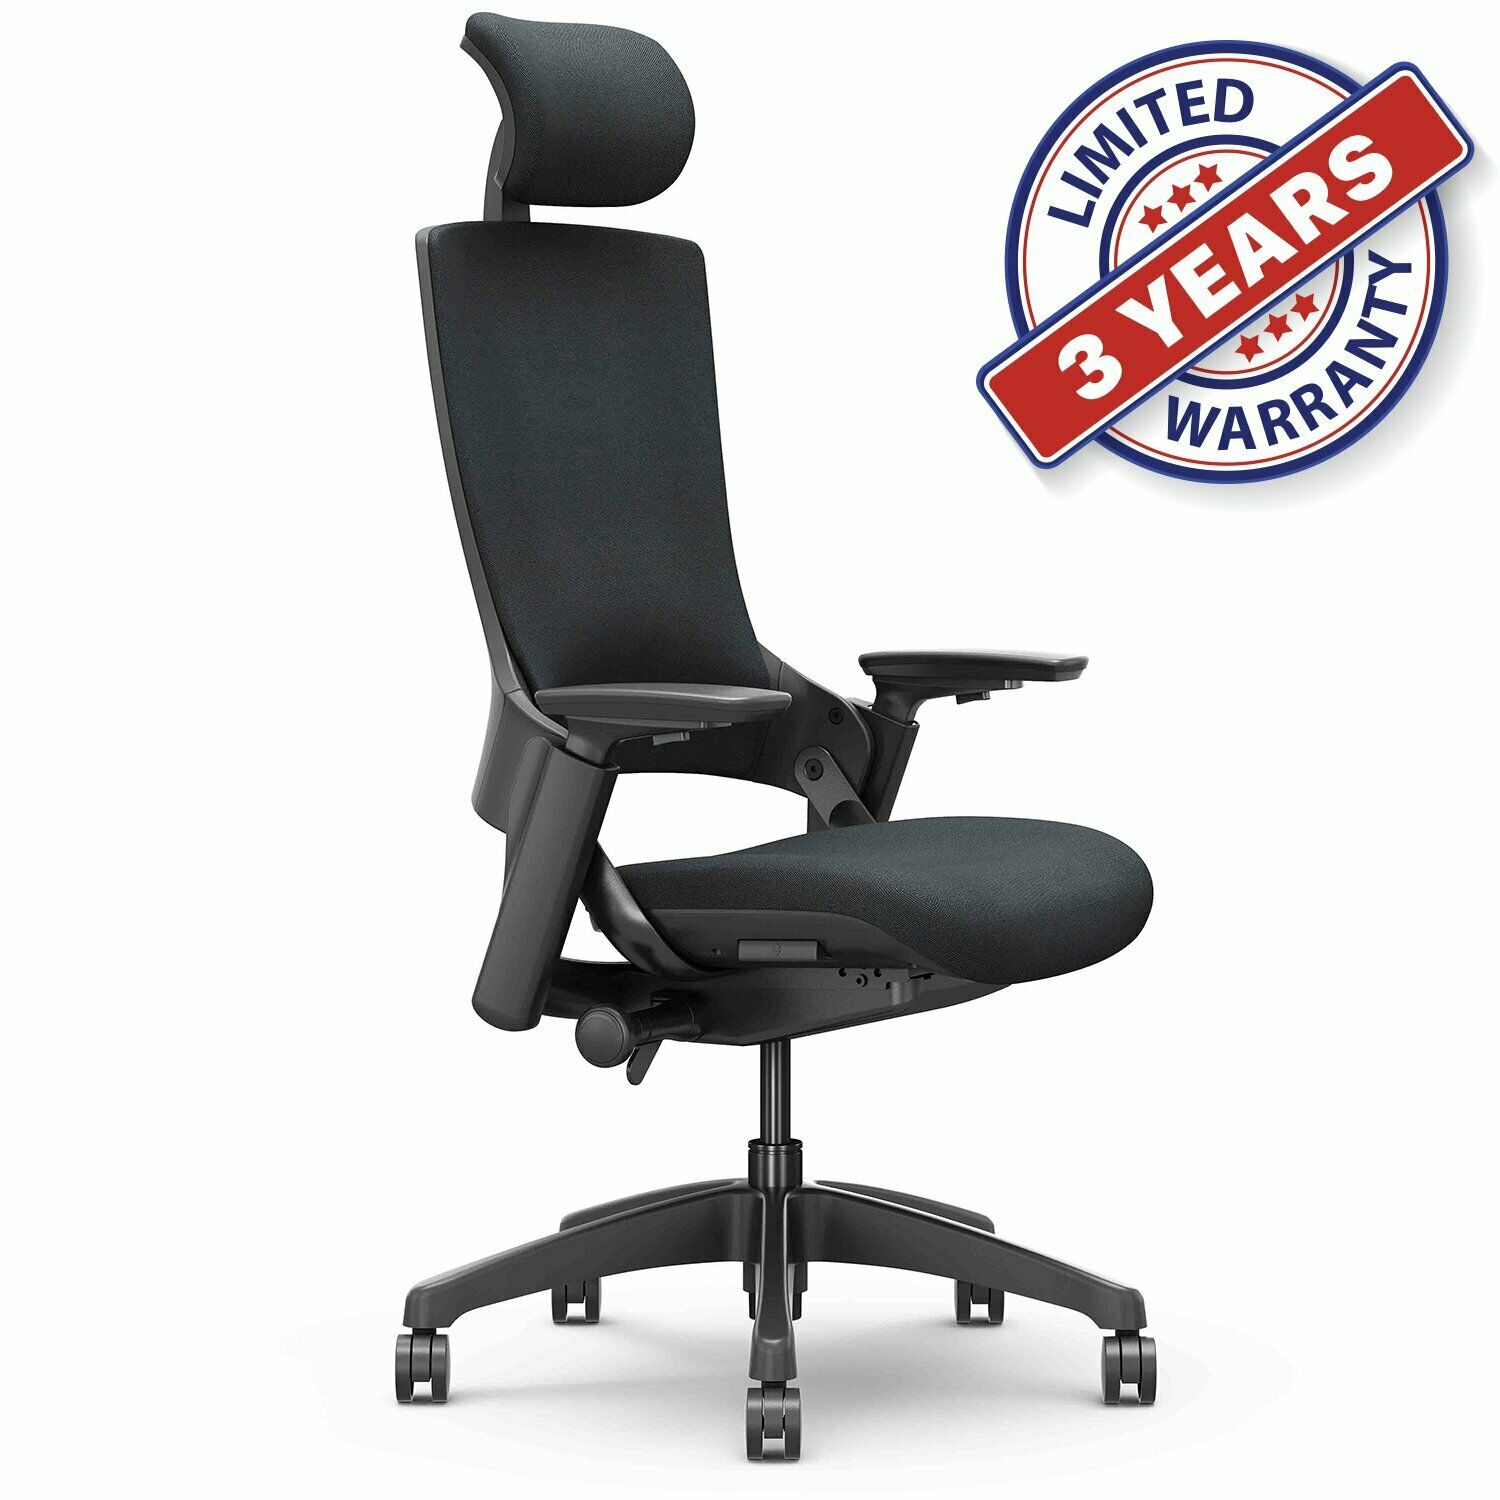 Ergonomic High Swivel Executive Chair with Adjustable Height